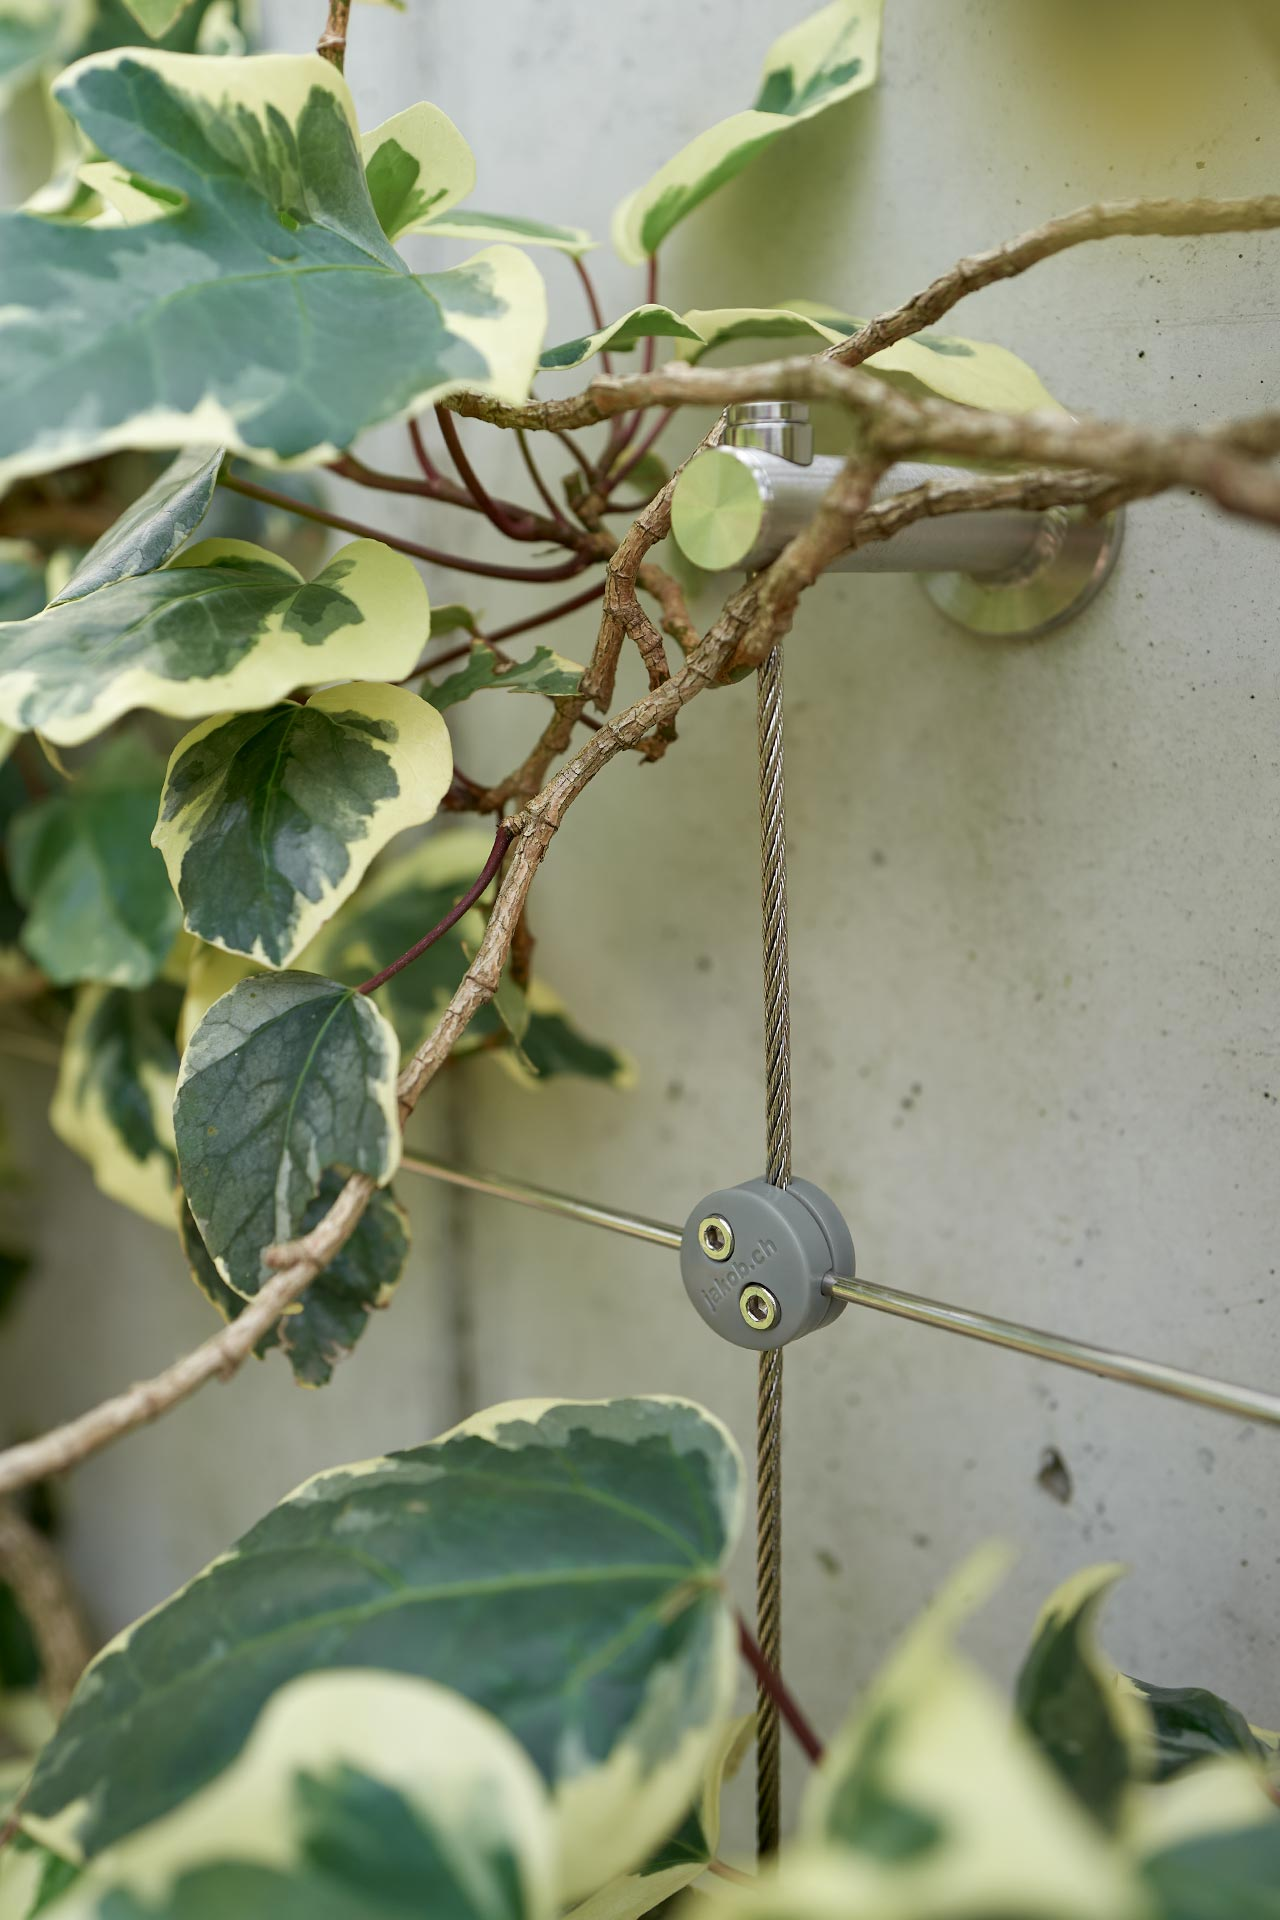 detail of trellis GreenKit with plants